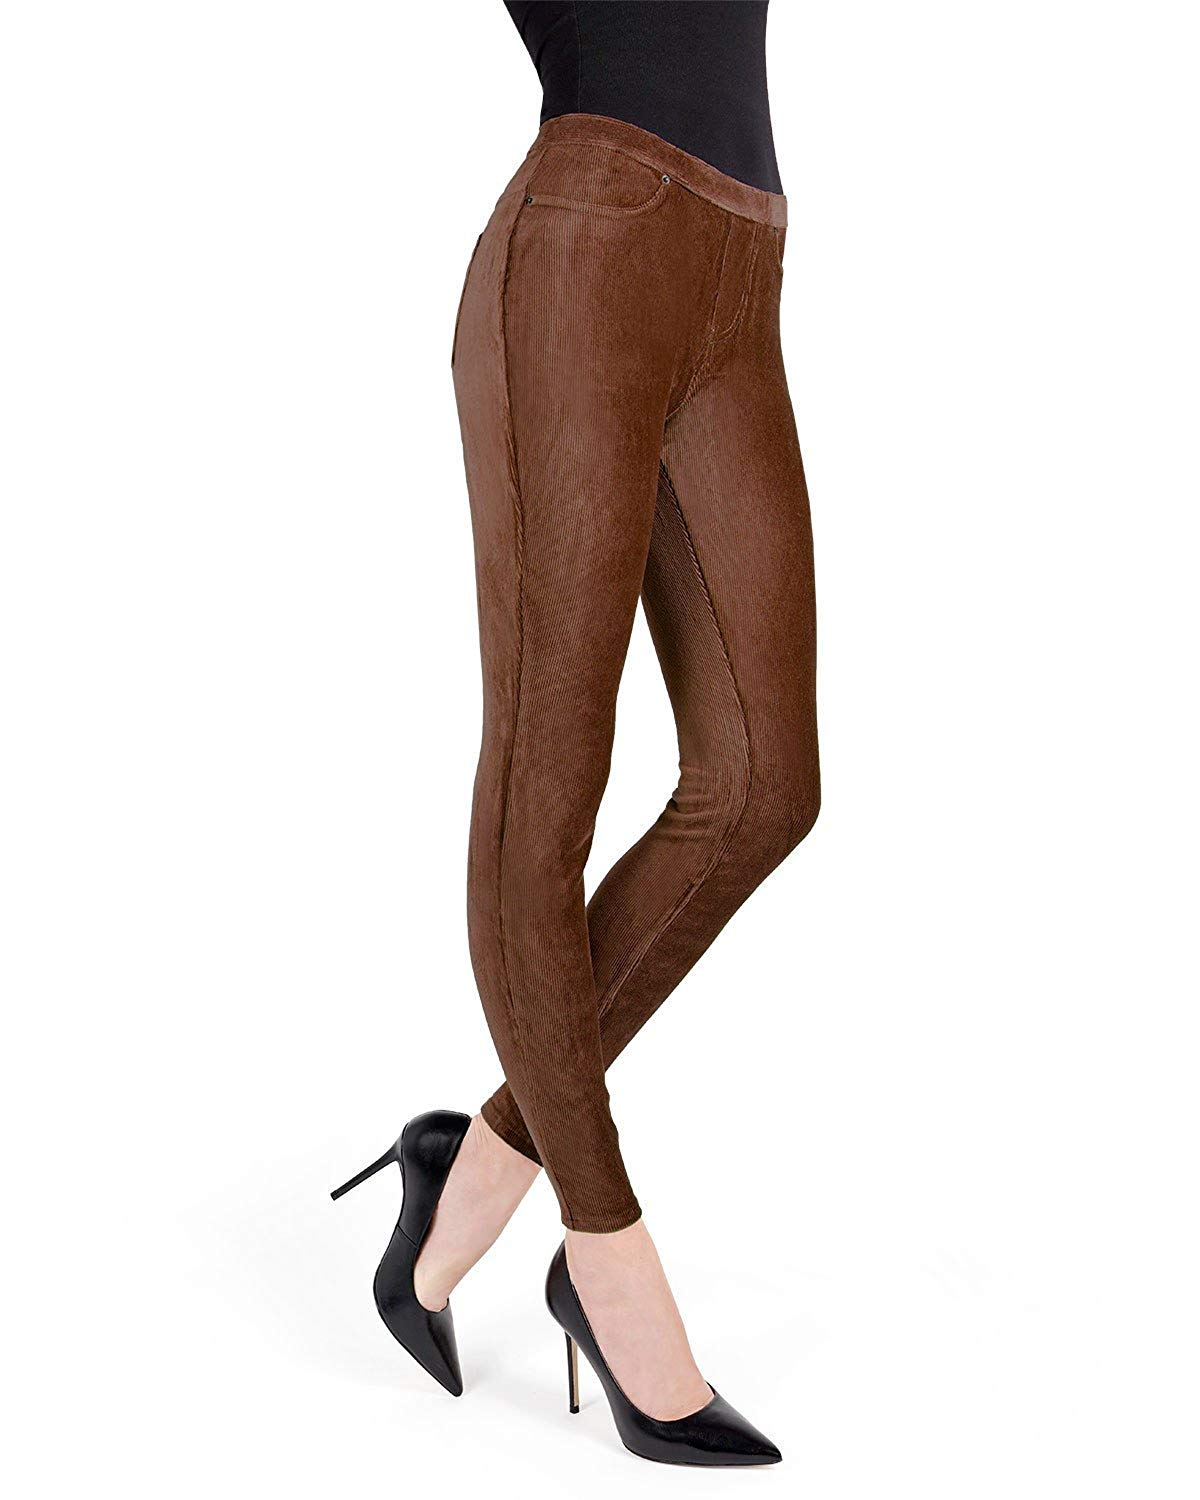 1f77e16d4f00ac Get Quotations · MeMoi Thin-Rib Stretch Corduroy Leggings | Women's Premium  Leggings